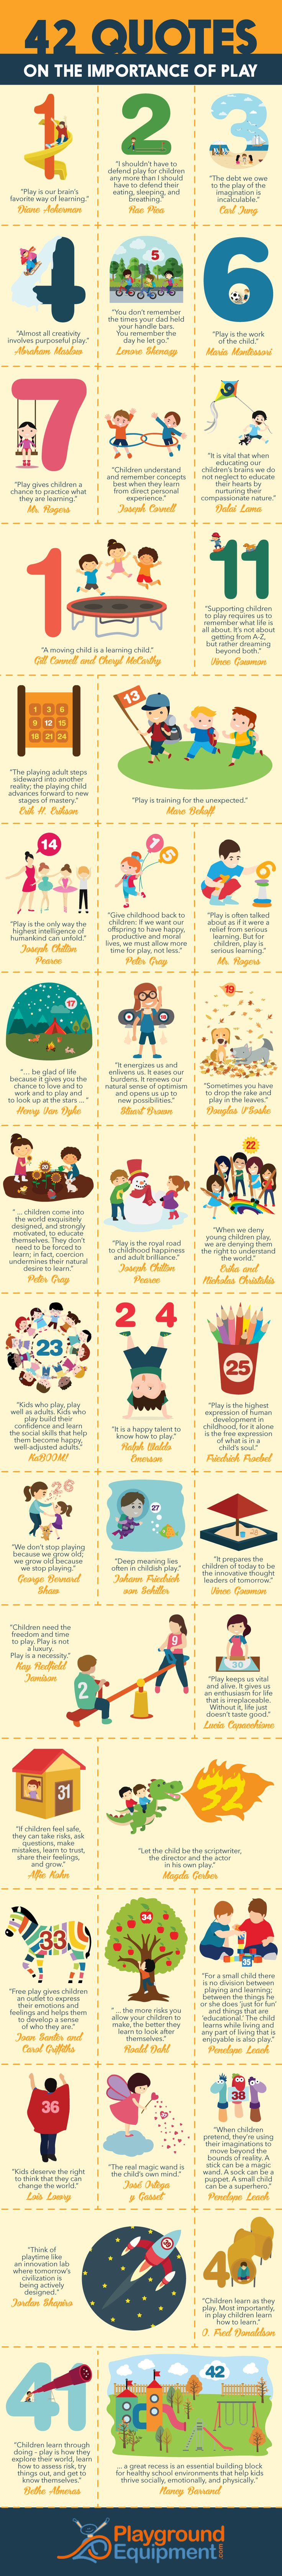 """The real magic is the child's own mind."" Thought you would all appreciate the artistry of this infographic. 42 quotes on the value of play!. follow @dquocbuu like and repin it if you love it"